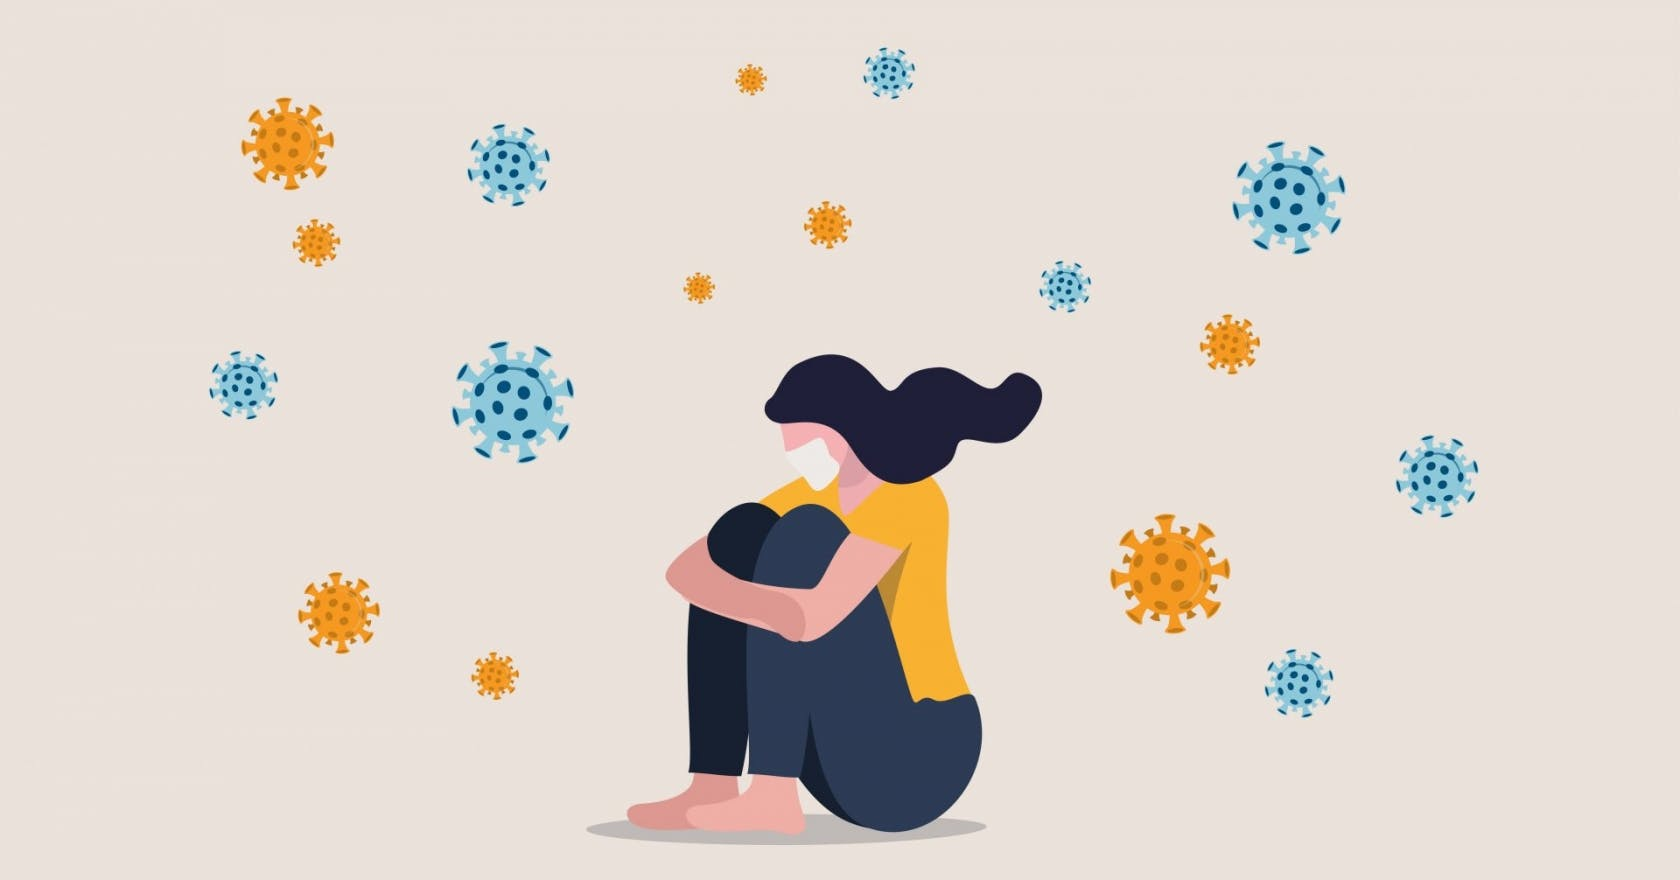 How to handle health anxiety during the coronavirus pandemic